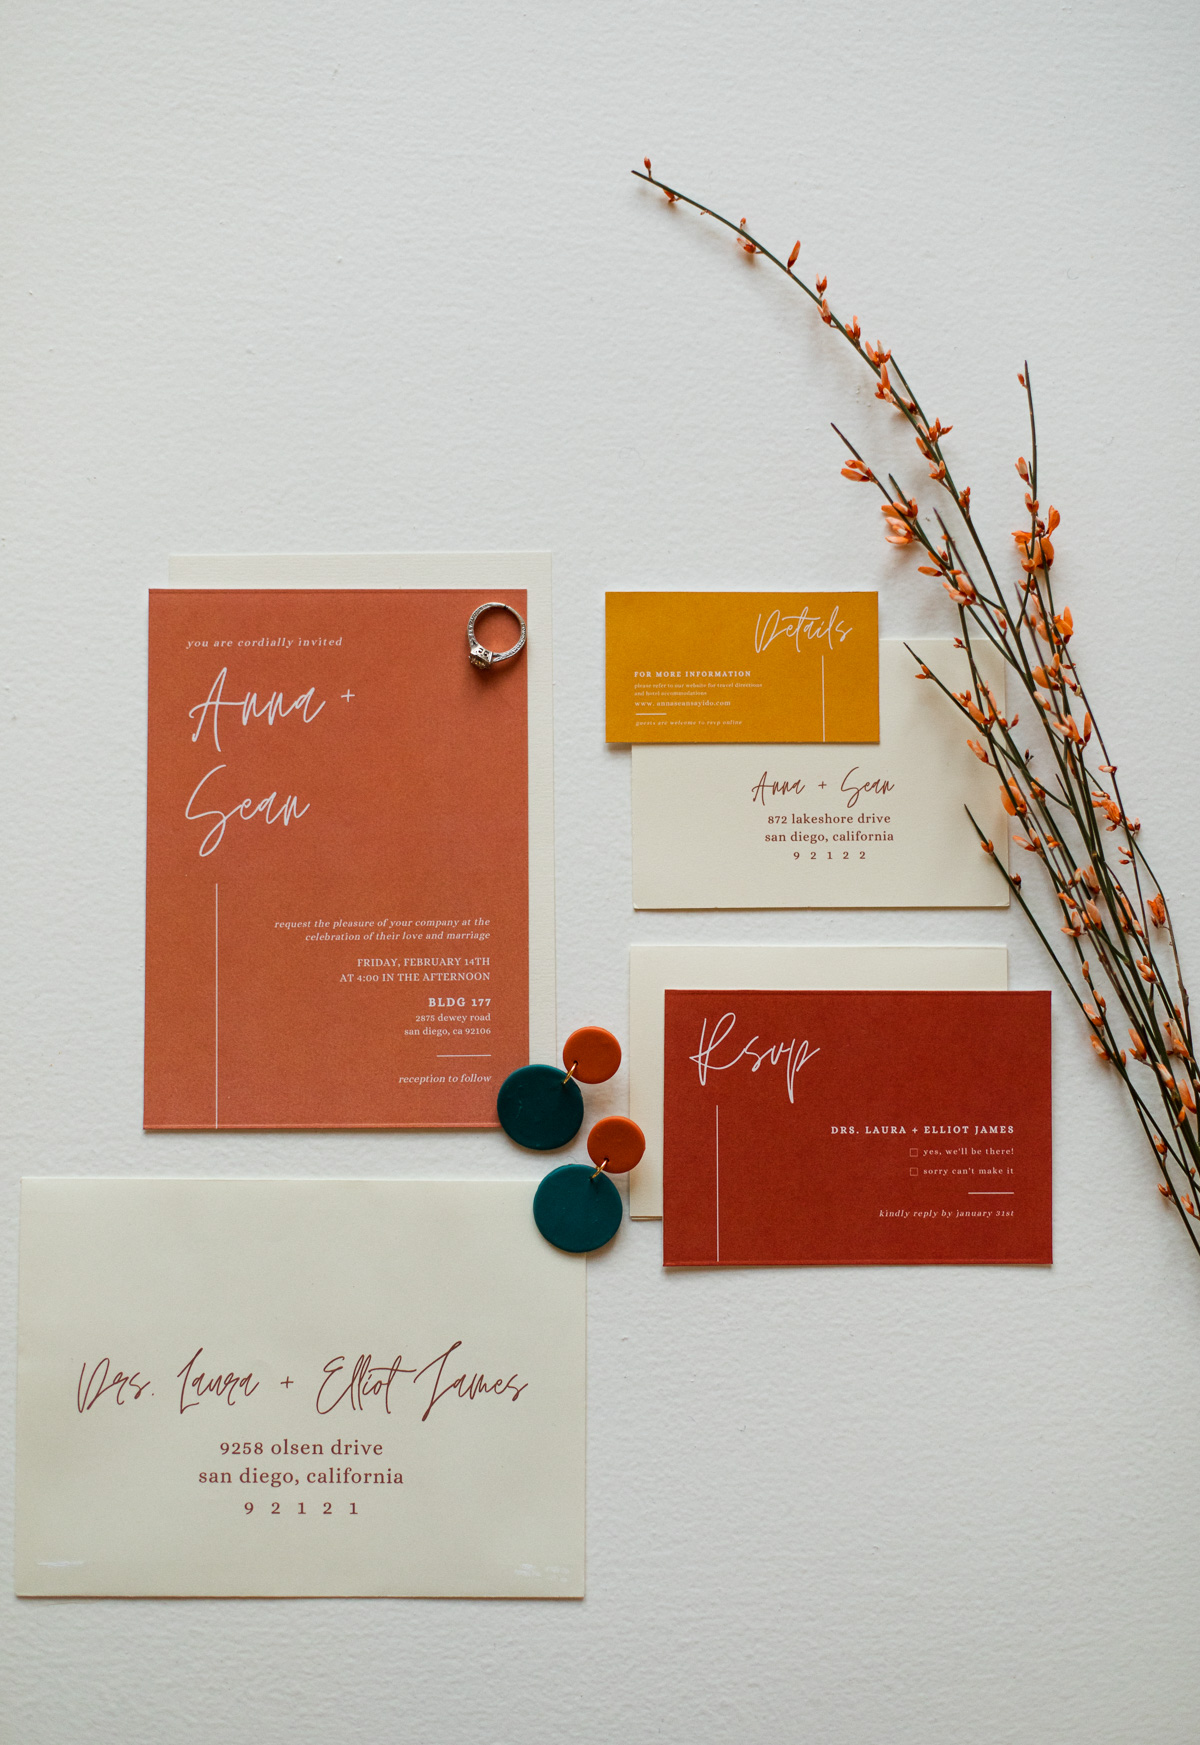 minimalist wedding invitations designed by TSE Calligraphy